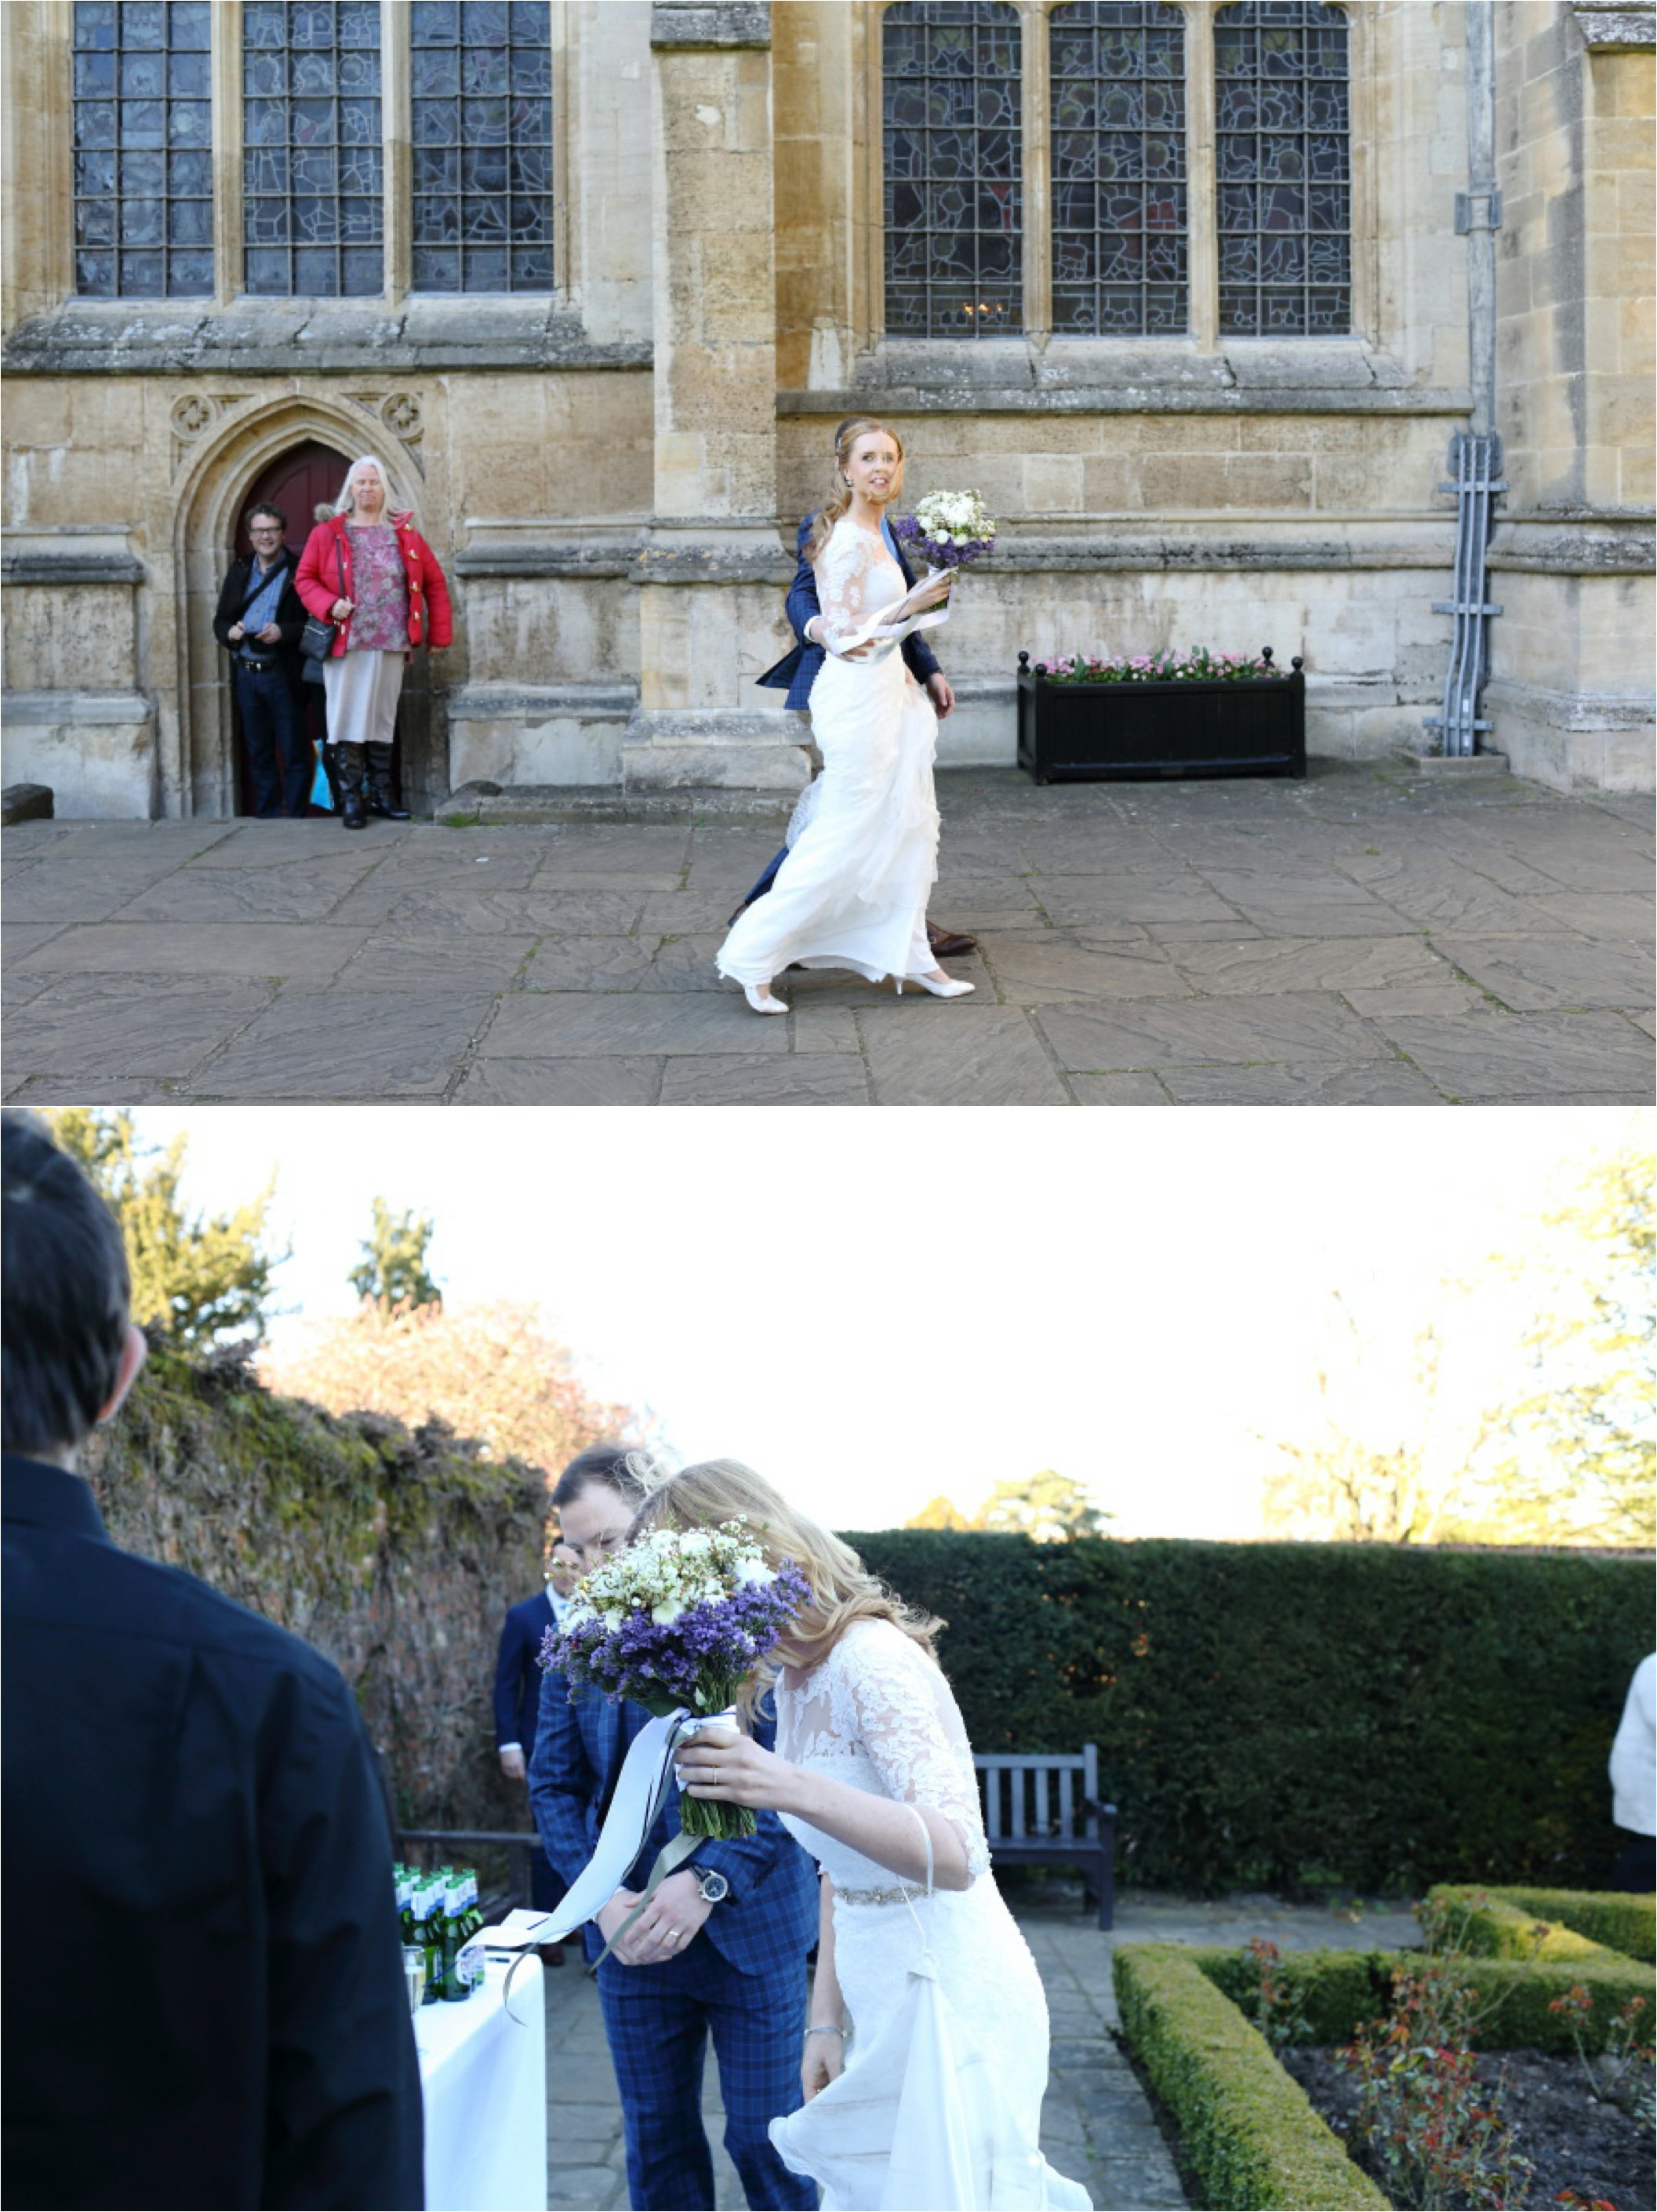 Quirky wedding photography in Bury St Edmunds, reportage wedding photography